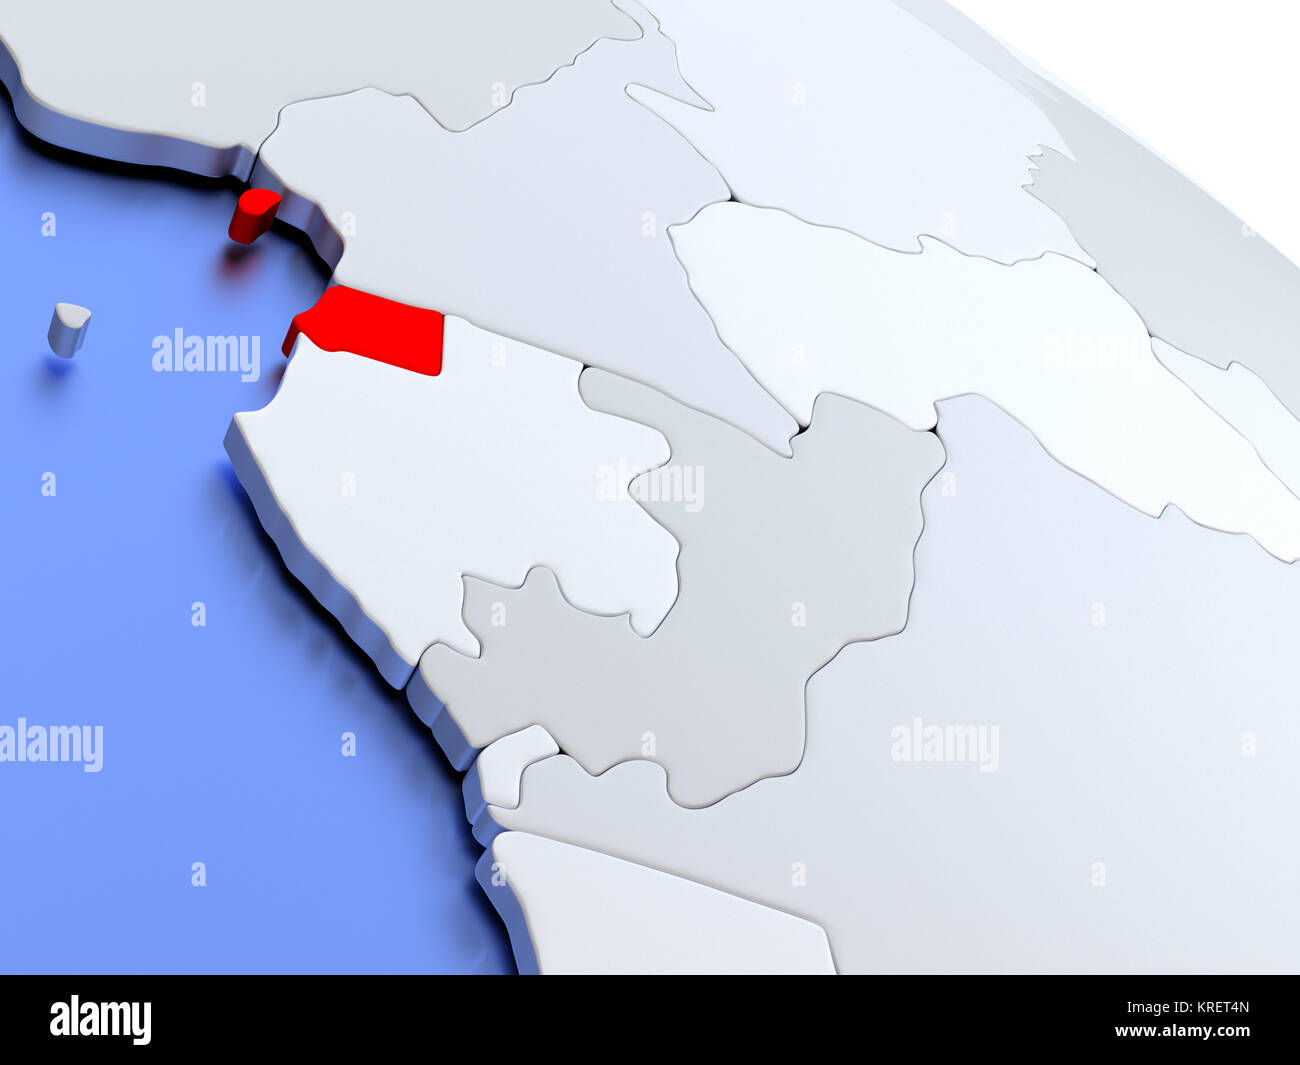 Equatorial guinea on world map stock photo 169356677 alamy equatorial guinea on world map gumiabroncs Image collections